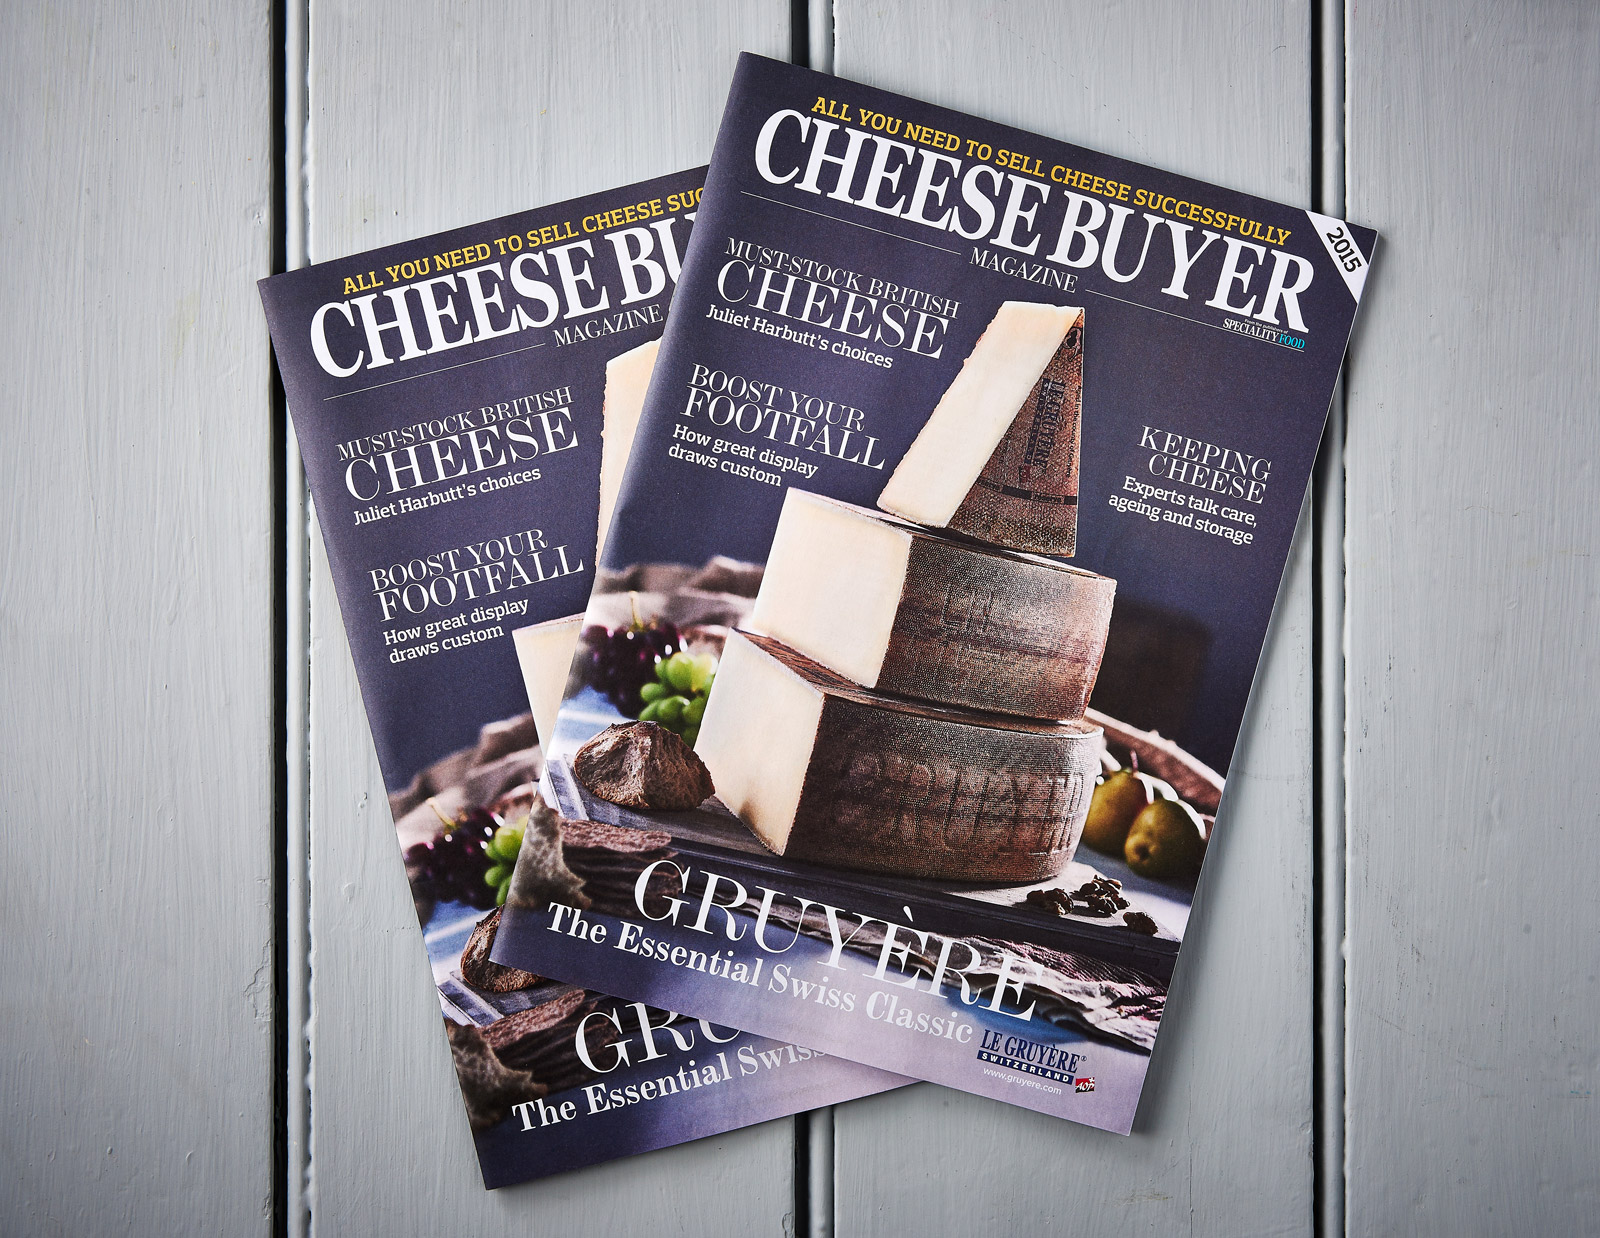 Gruyére cheese on the cover of Cheese Buyer